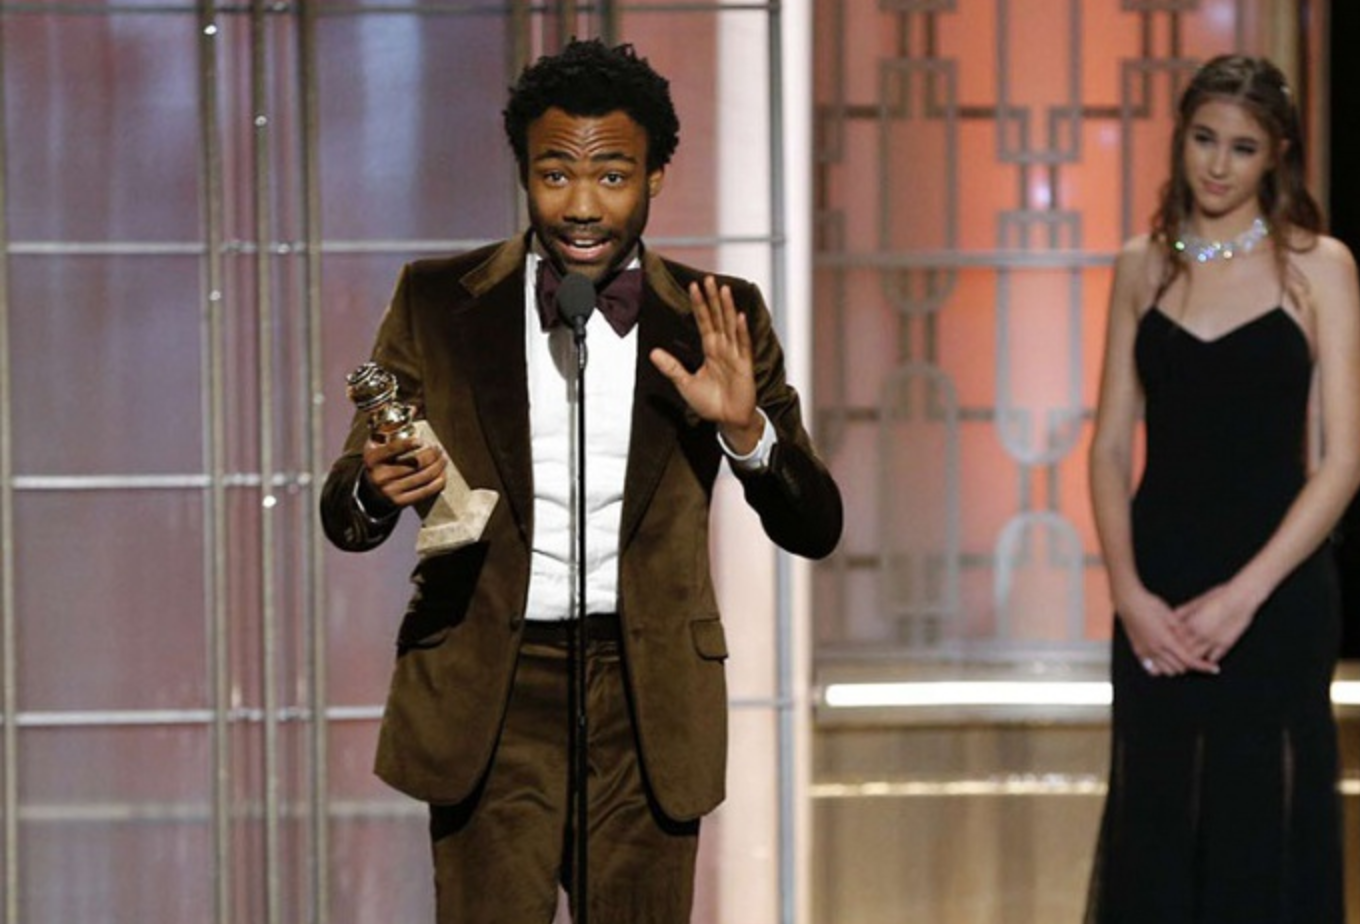 Donald Glover a.k.a Childish Gambino triomphe aux Golden Globes